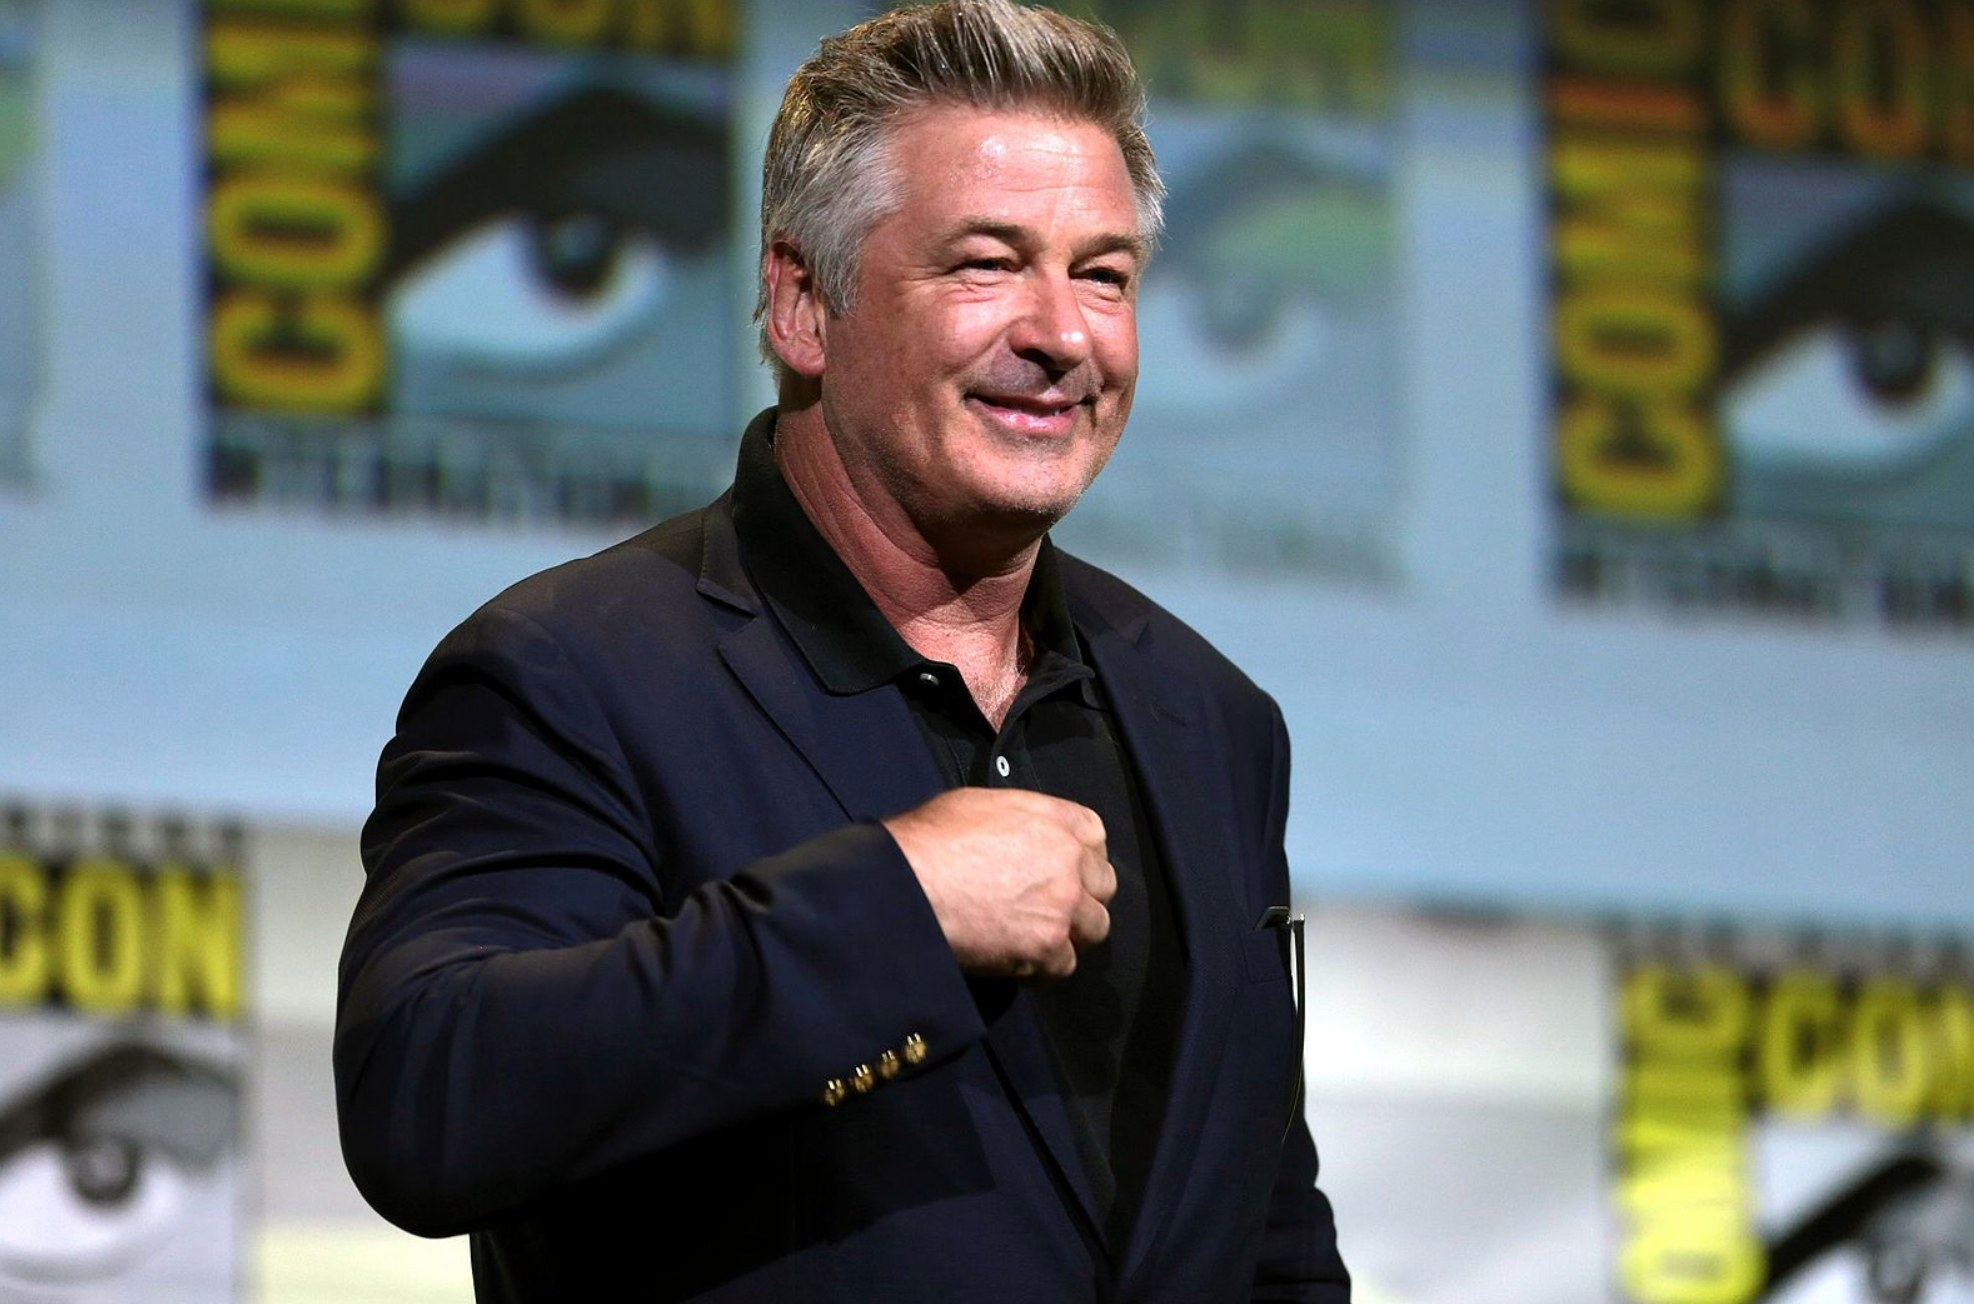 Vegan actor Alec Baldwin